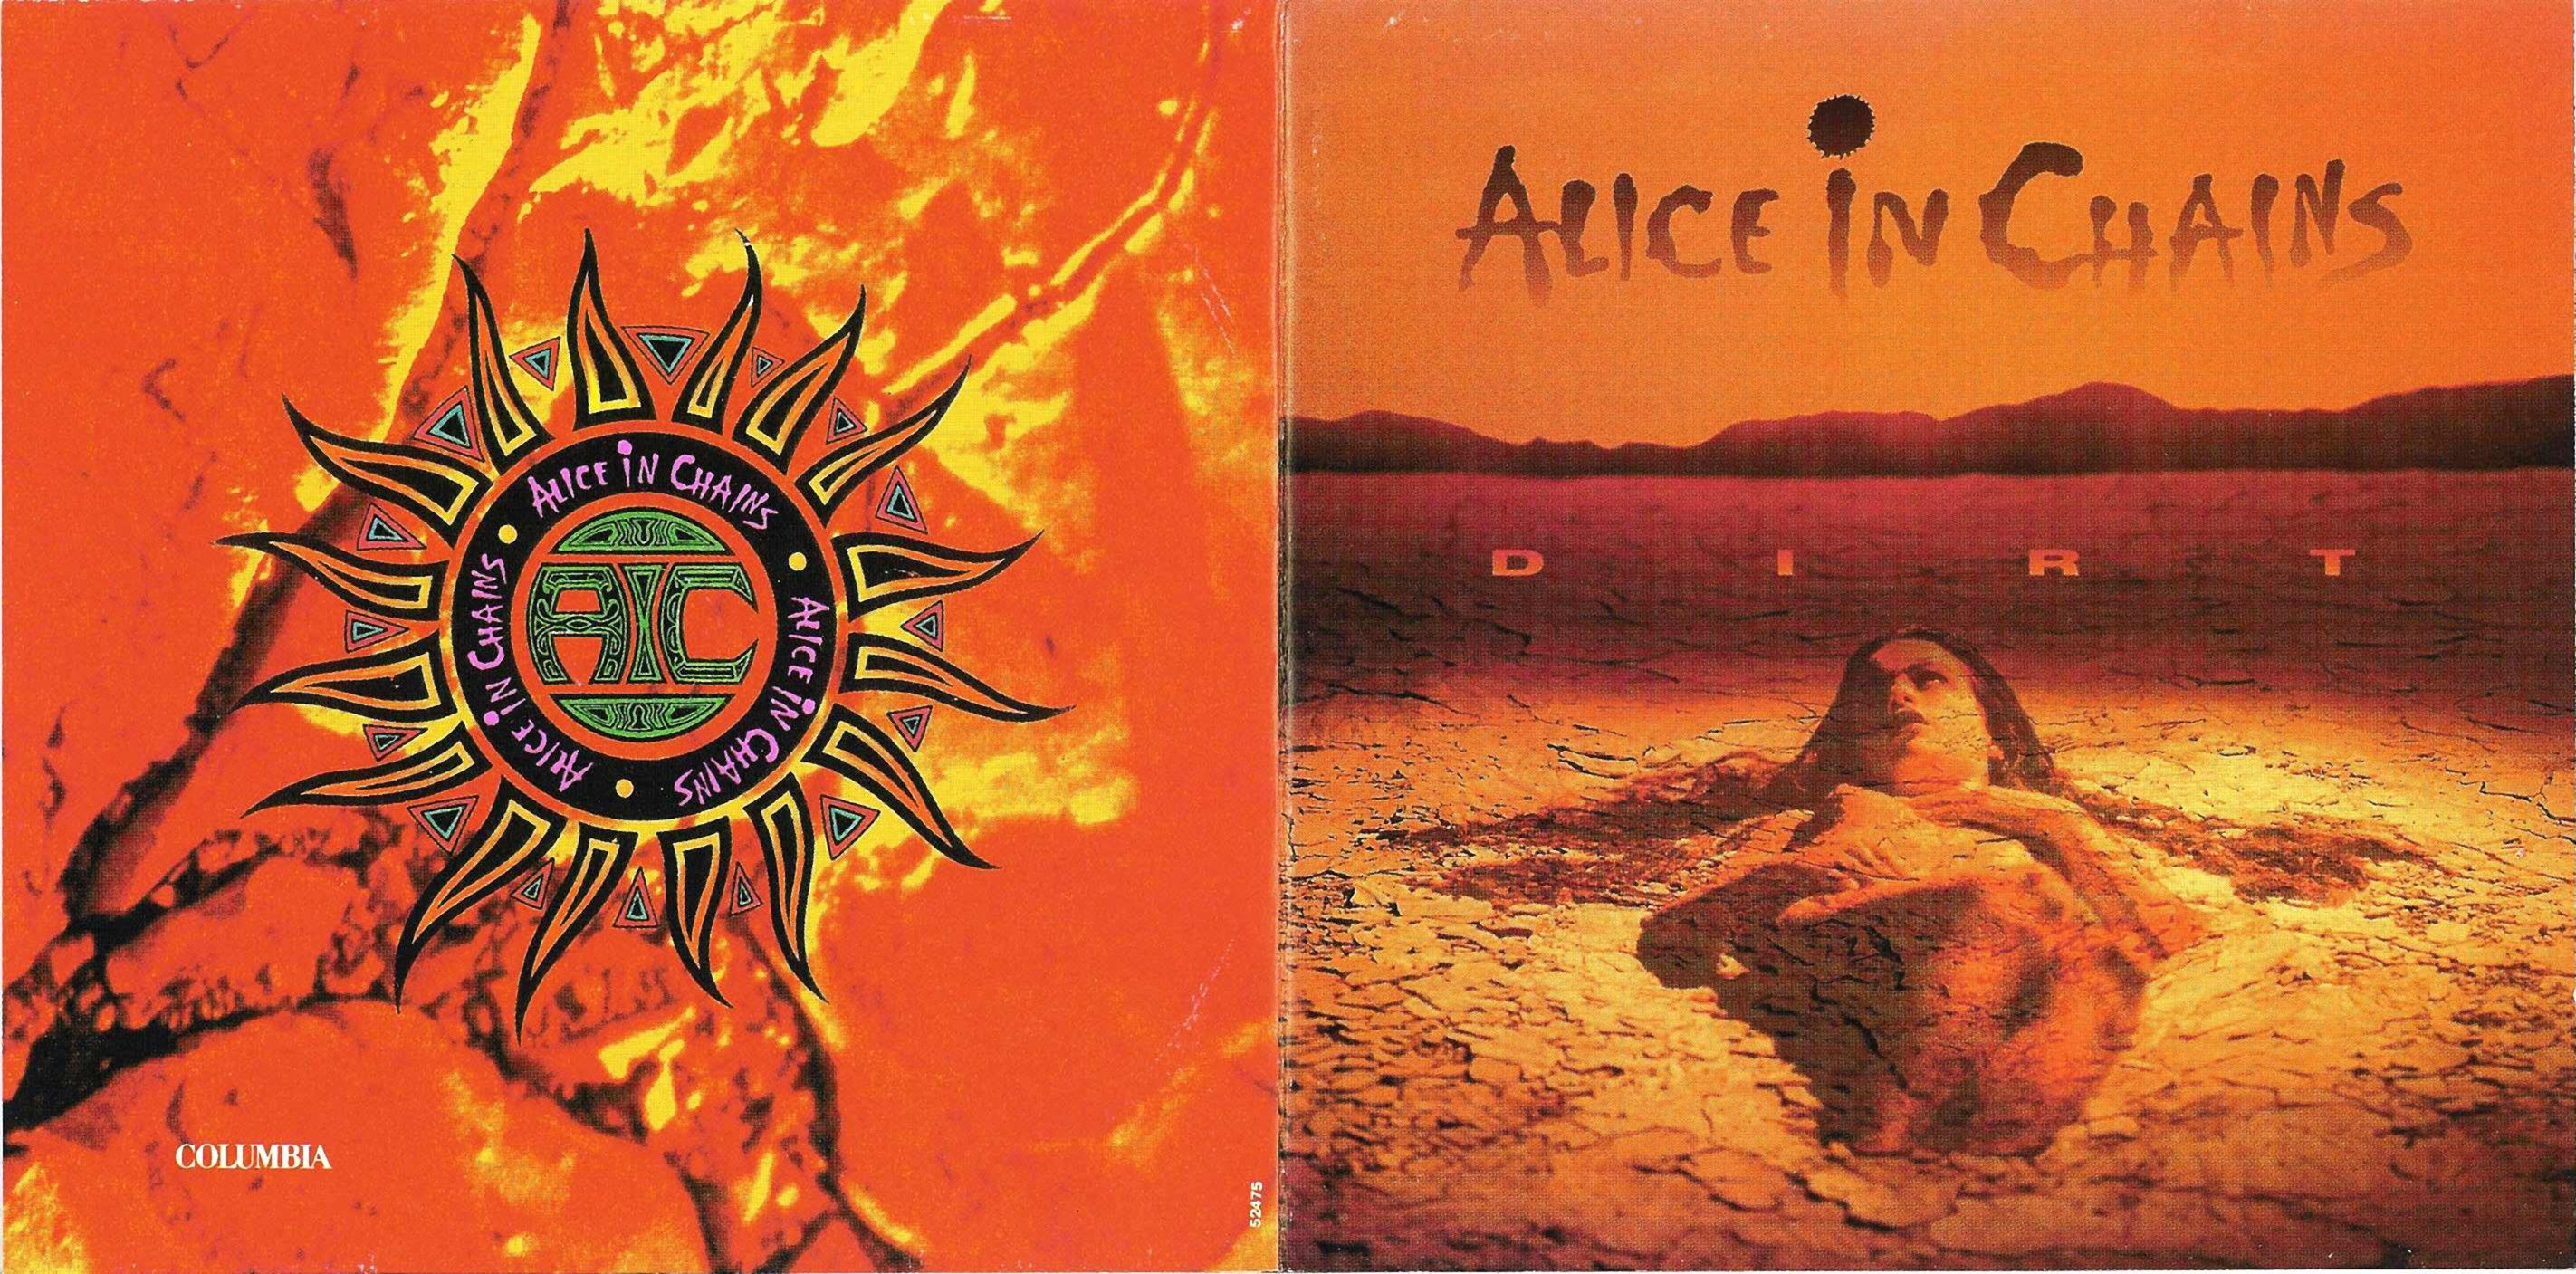 Pin On Cd And Or Record Album Covers